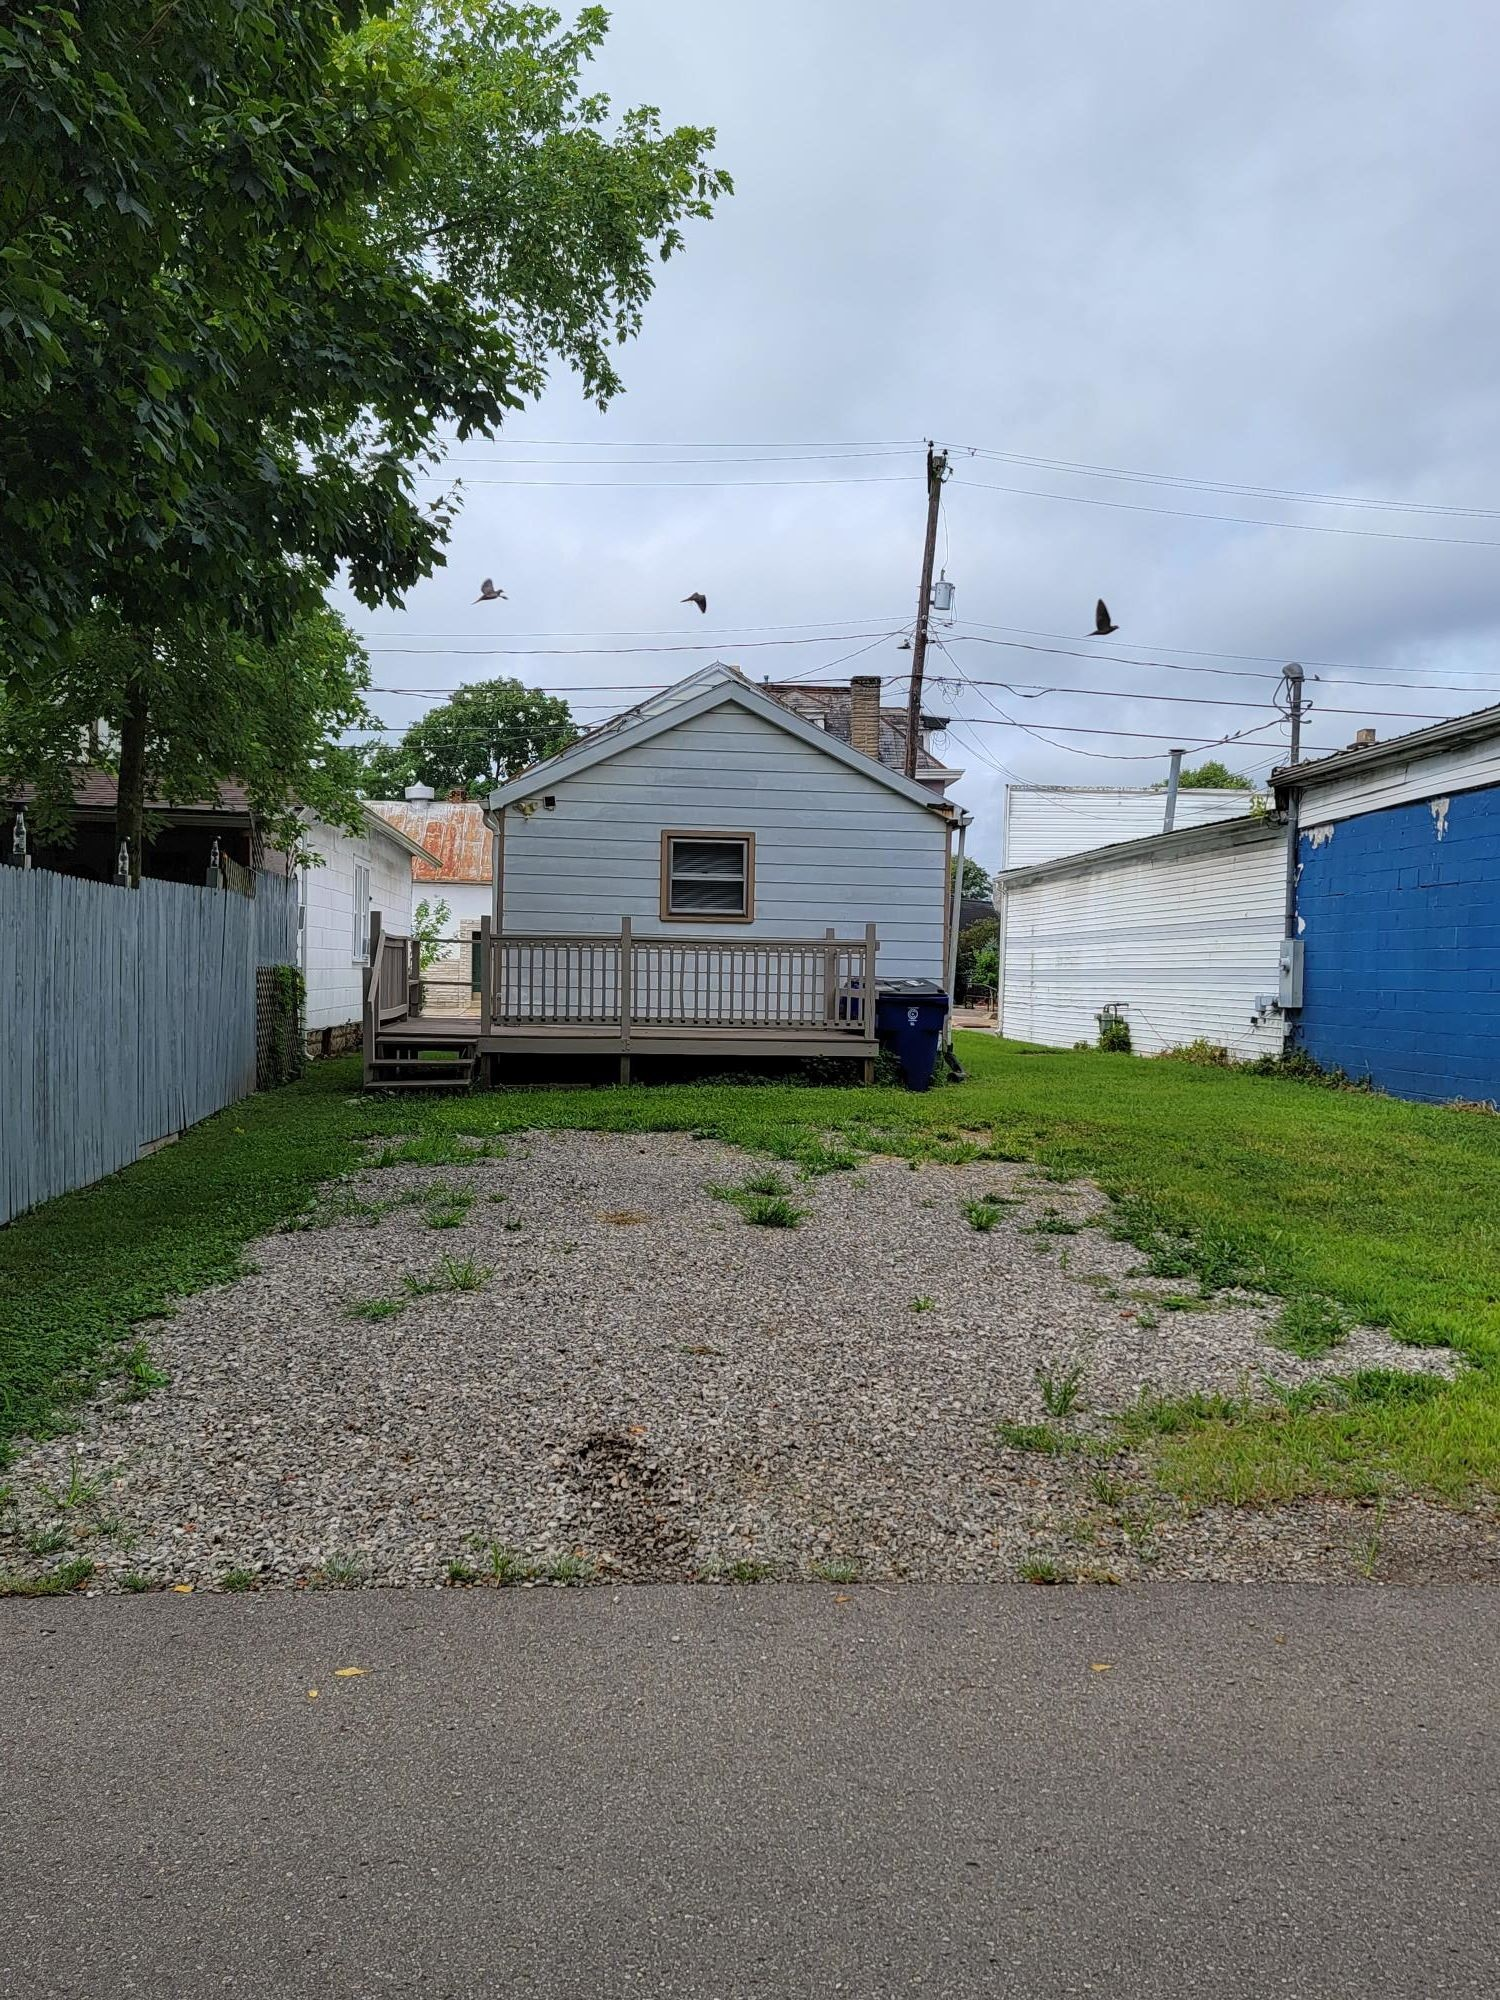 1-Bedroom House In Chillicothe